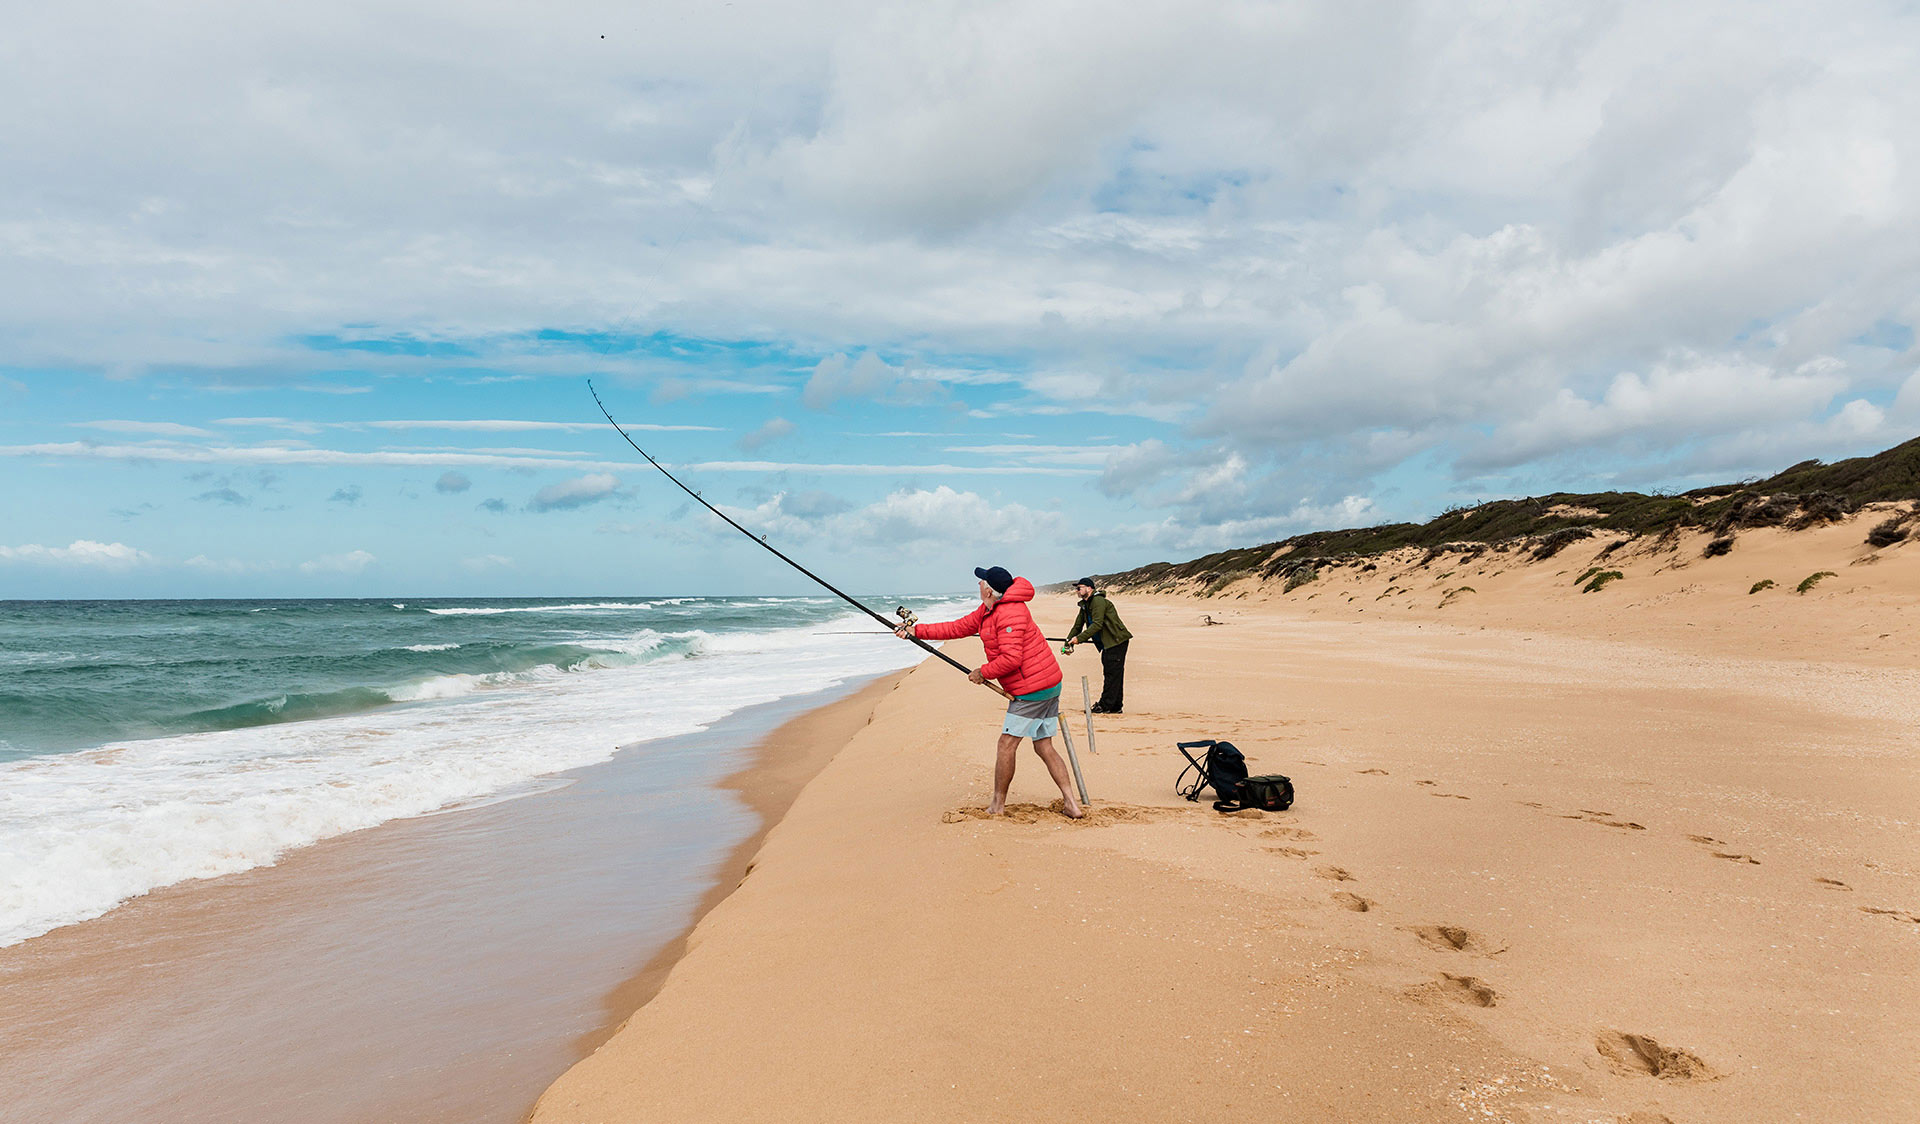 Two men fish along 90 mile beach.